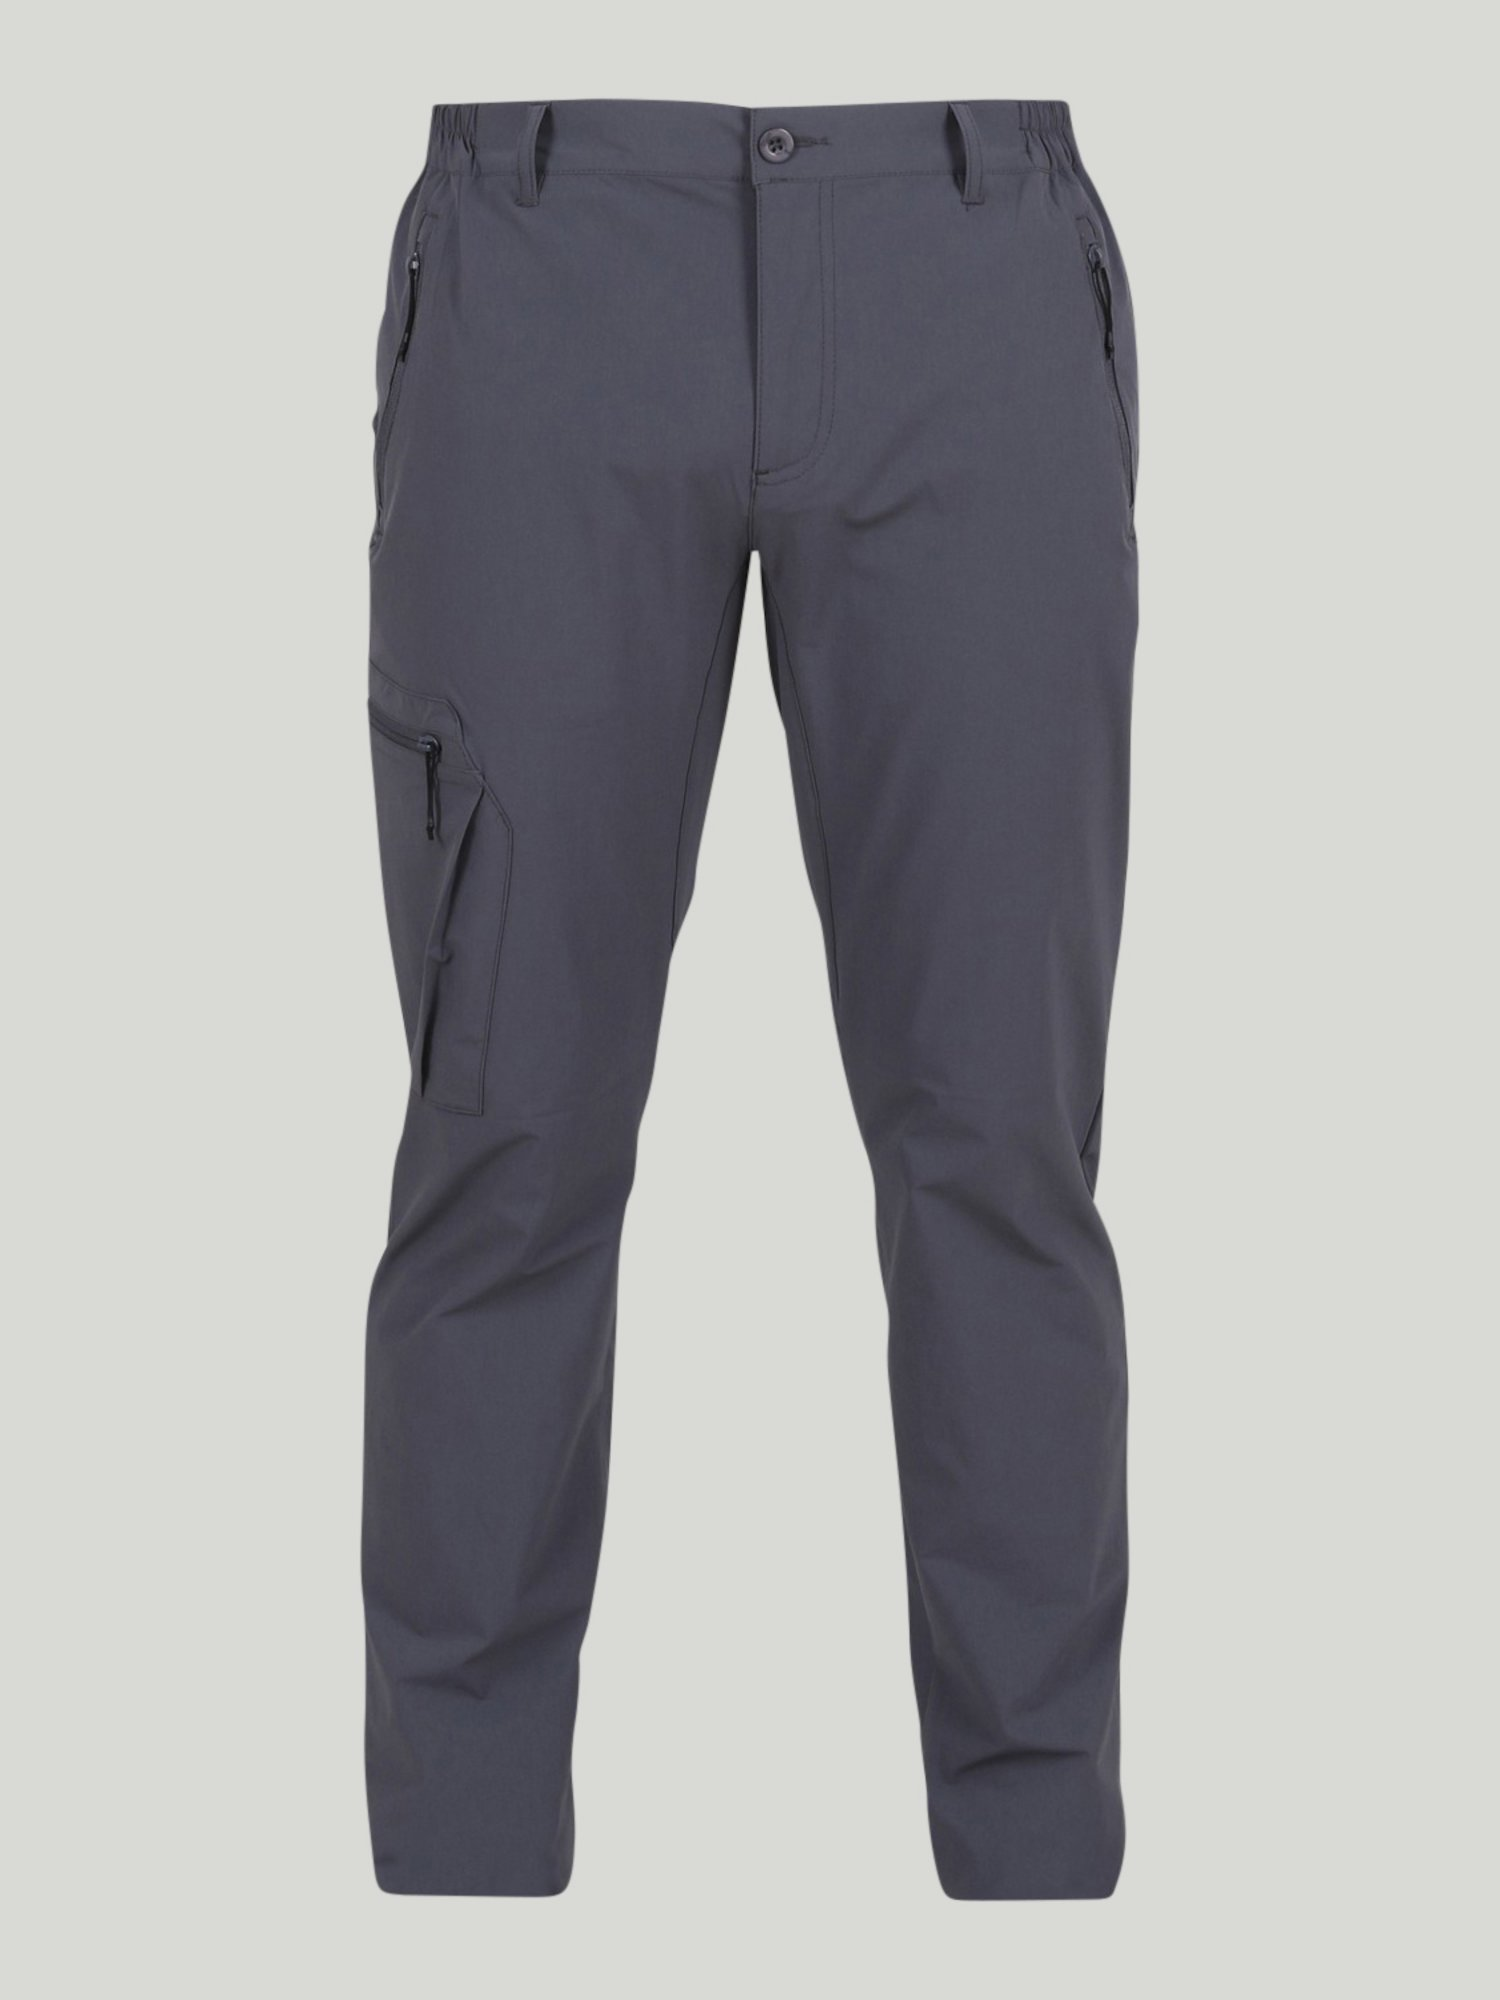 Trousers Cala Gonone - Anthracite